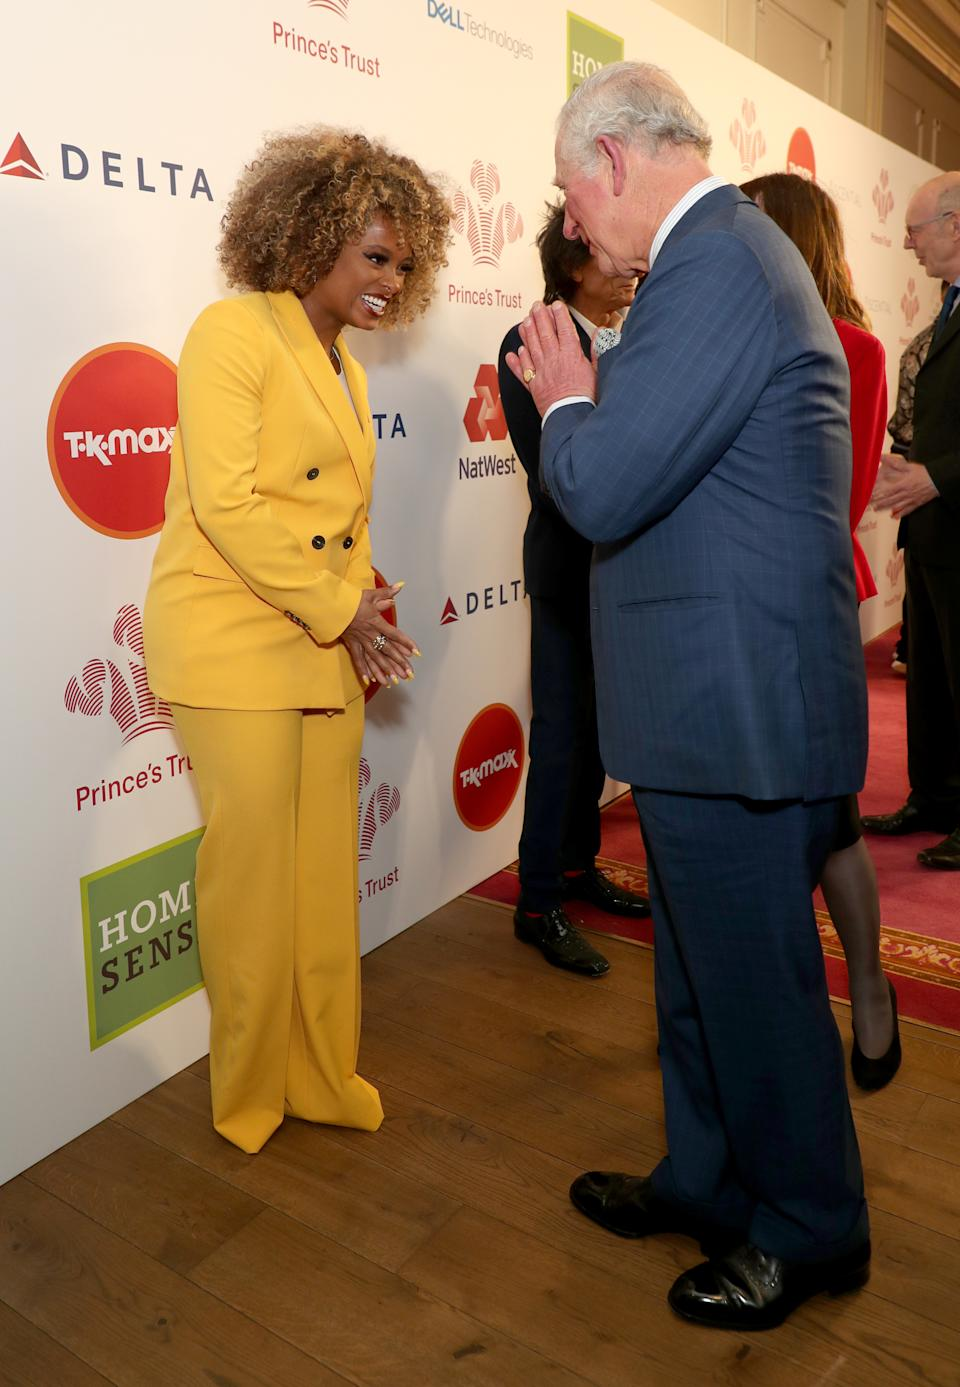 The Prince of Wales uses the Namaste gesture to greet Fleur East as he arrives at the annual Prince's Trust Awards 2020 held at the London Palladium.